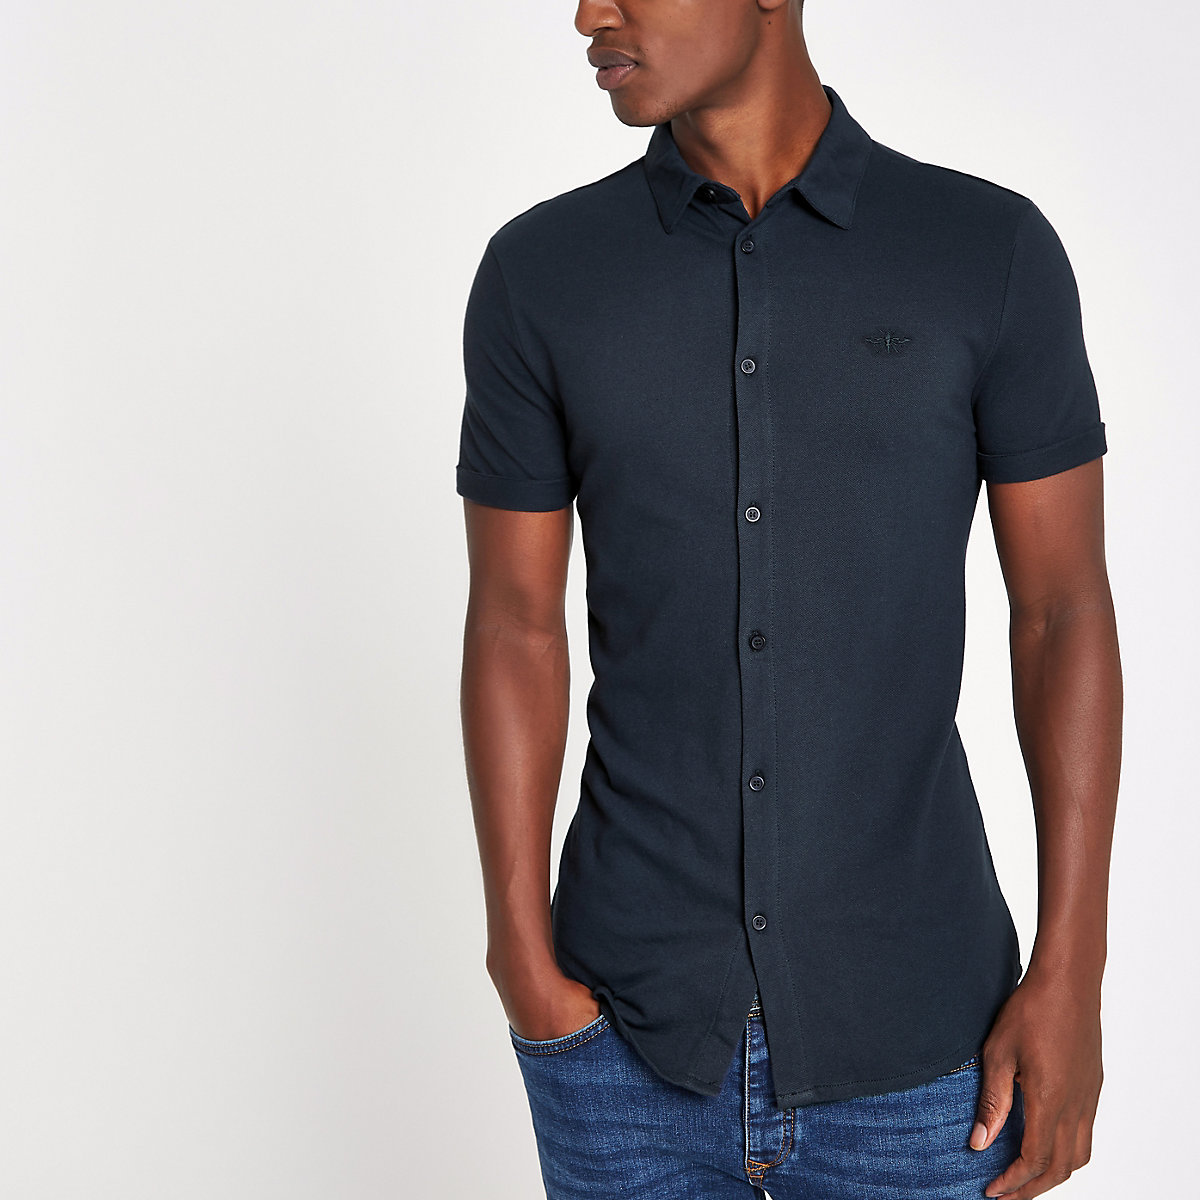 Navy muscle fit button down polo shirt